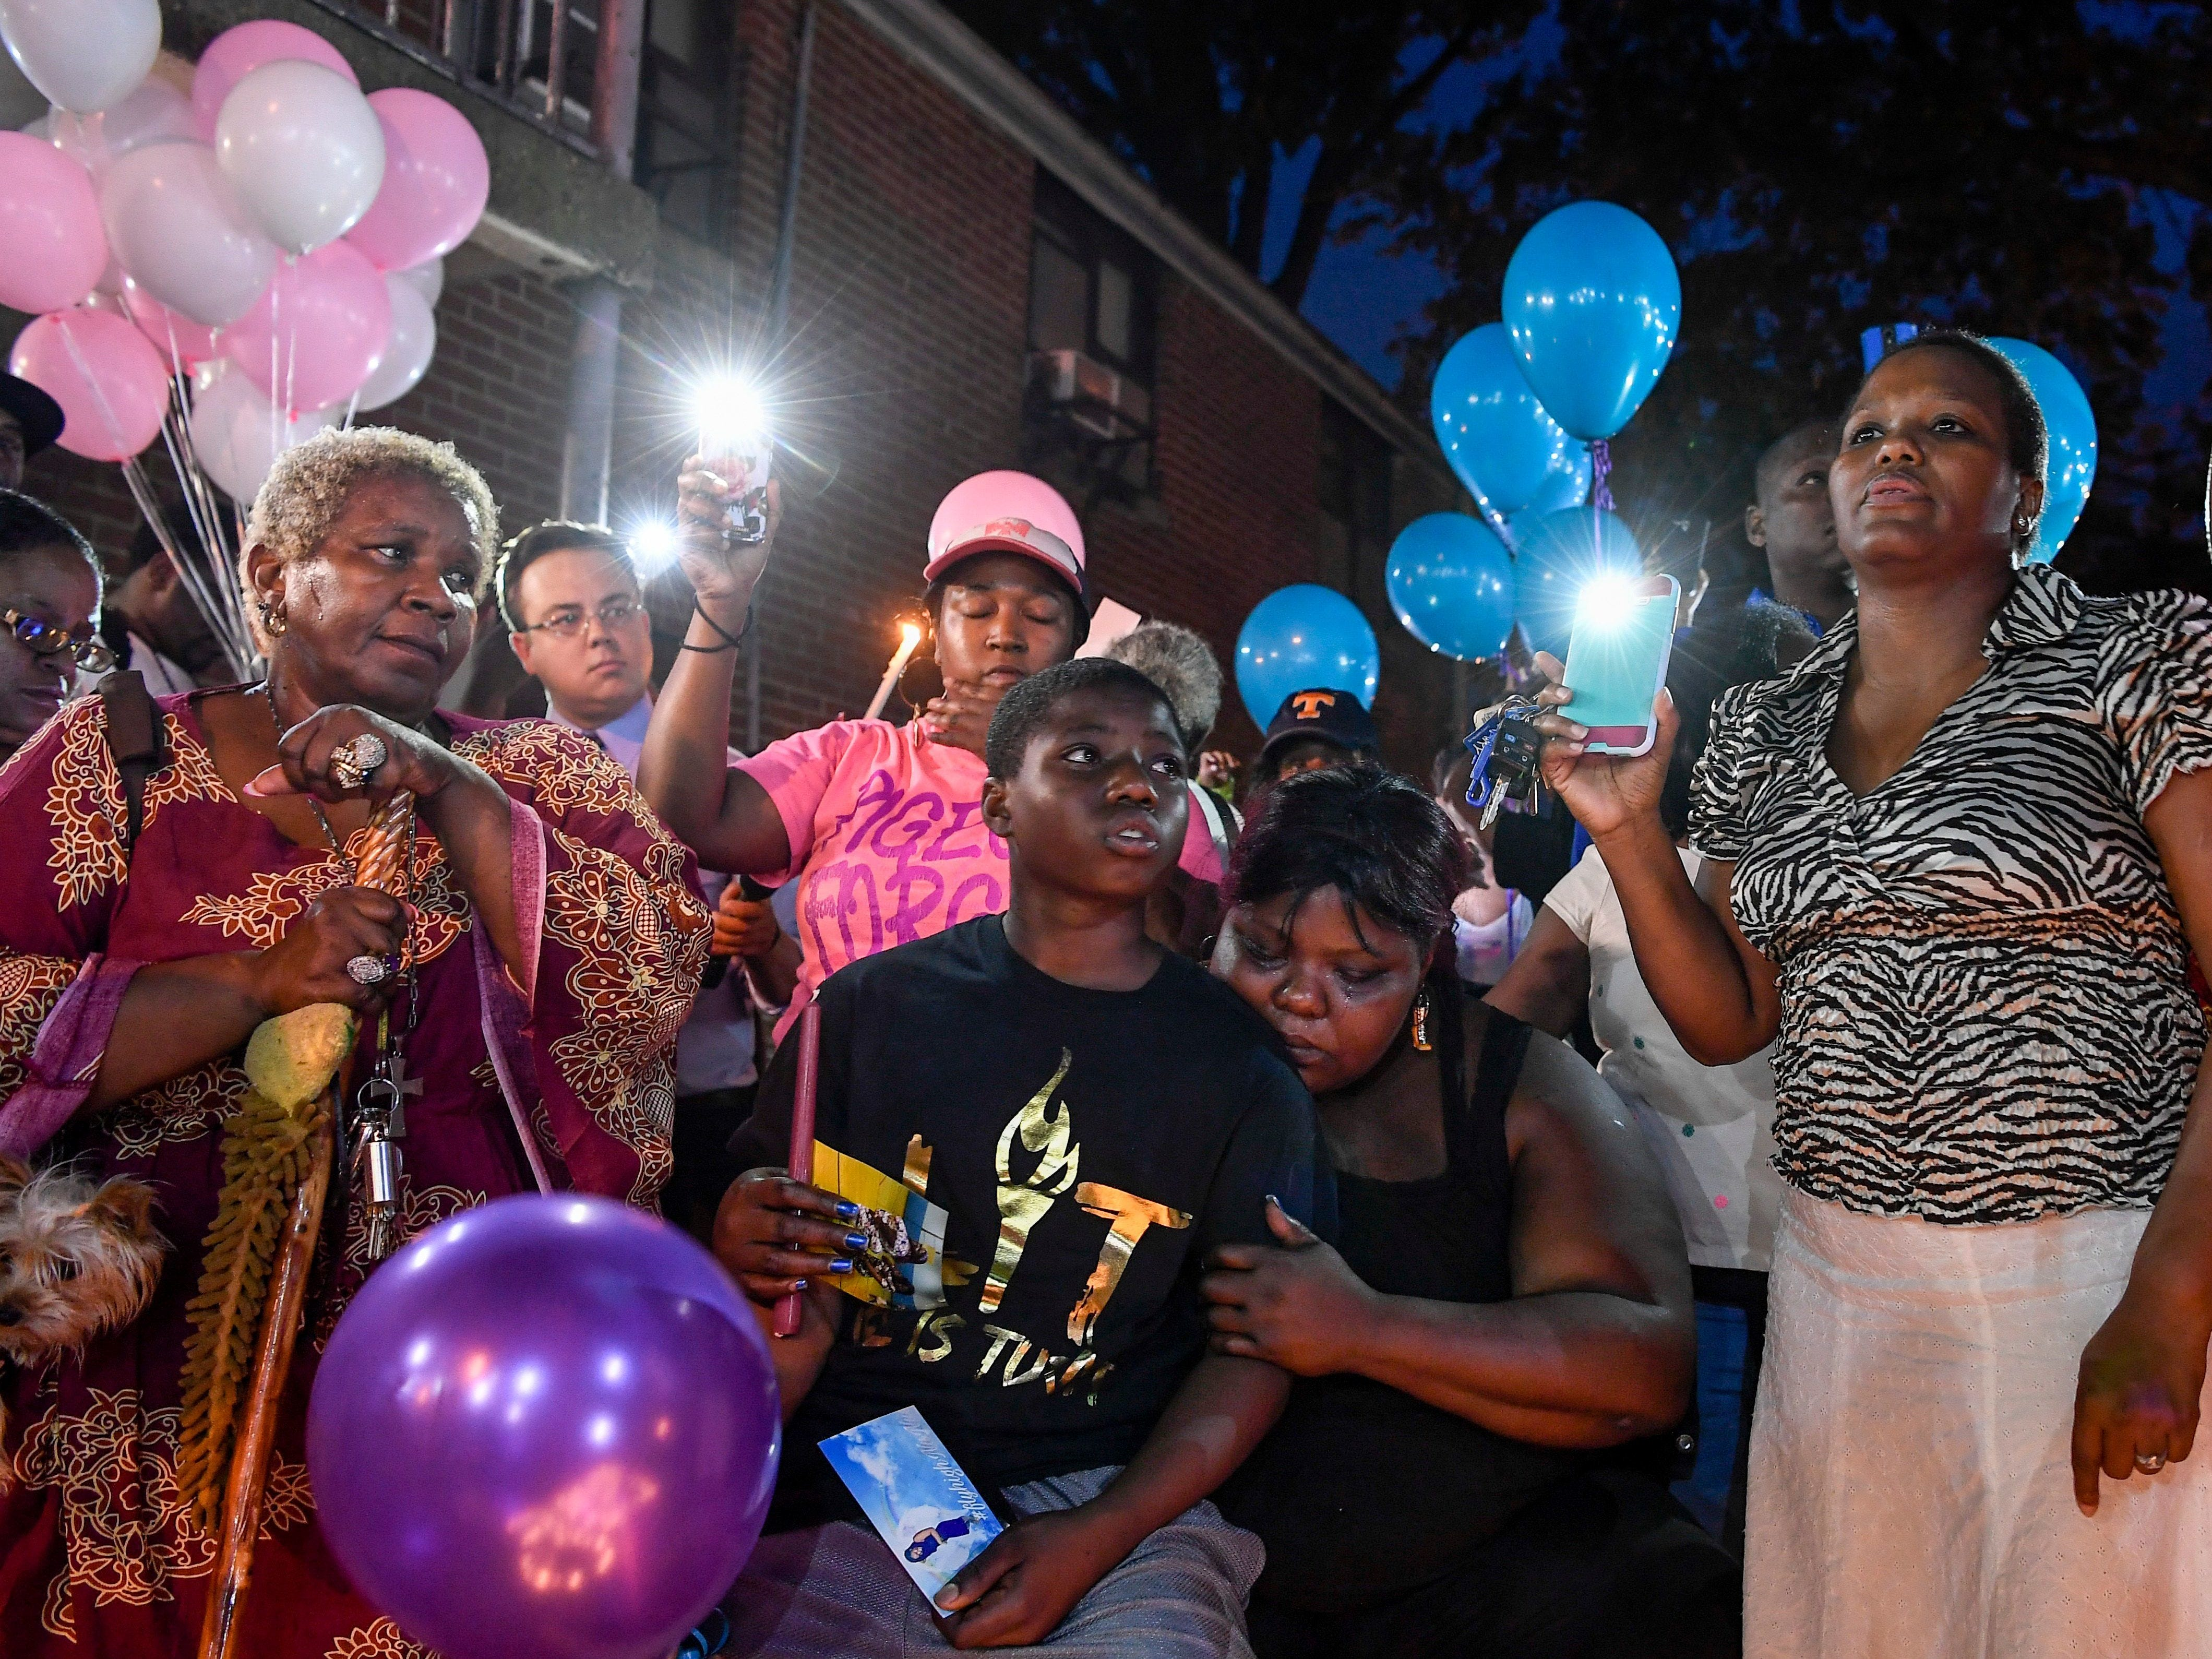 Deberianah Begley's brother Danquan and mother, Tika Begley, are surrounded by friends and family during a candlelight vigil Oct. 9, 2017, at the James A. Cayce Homes.